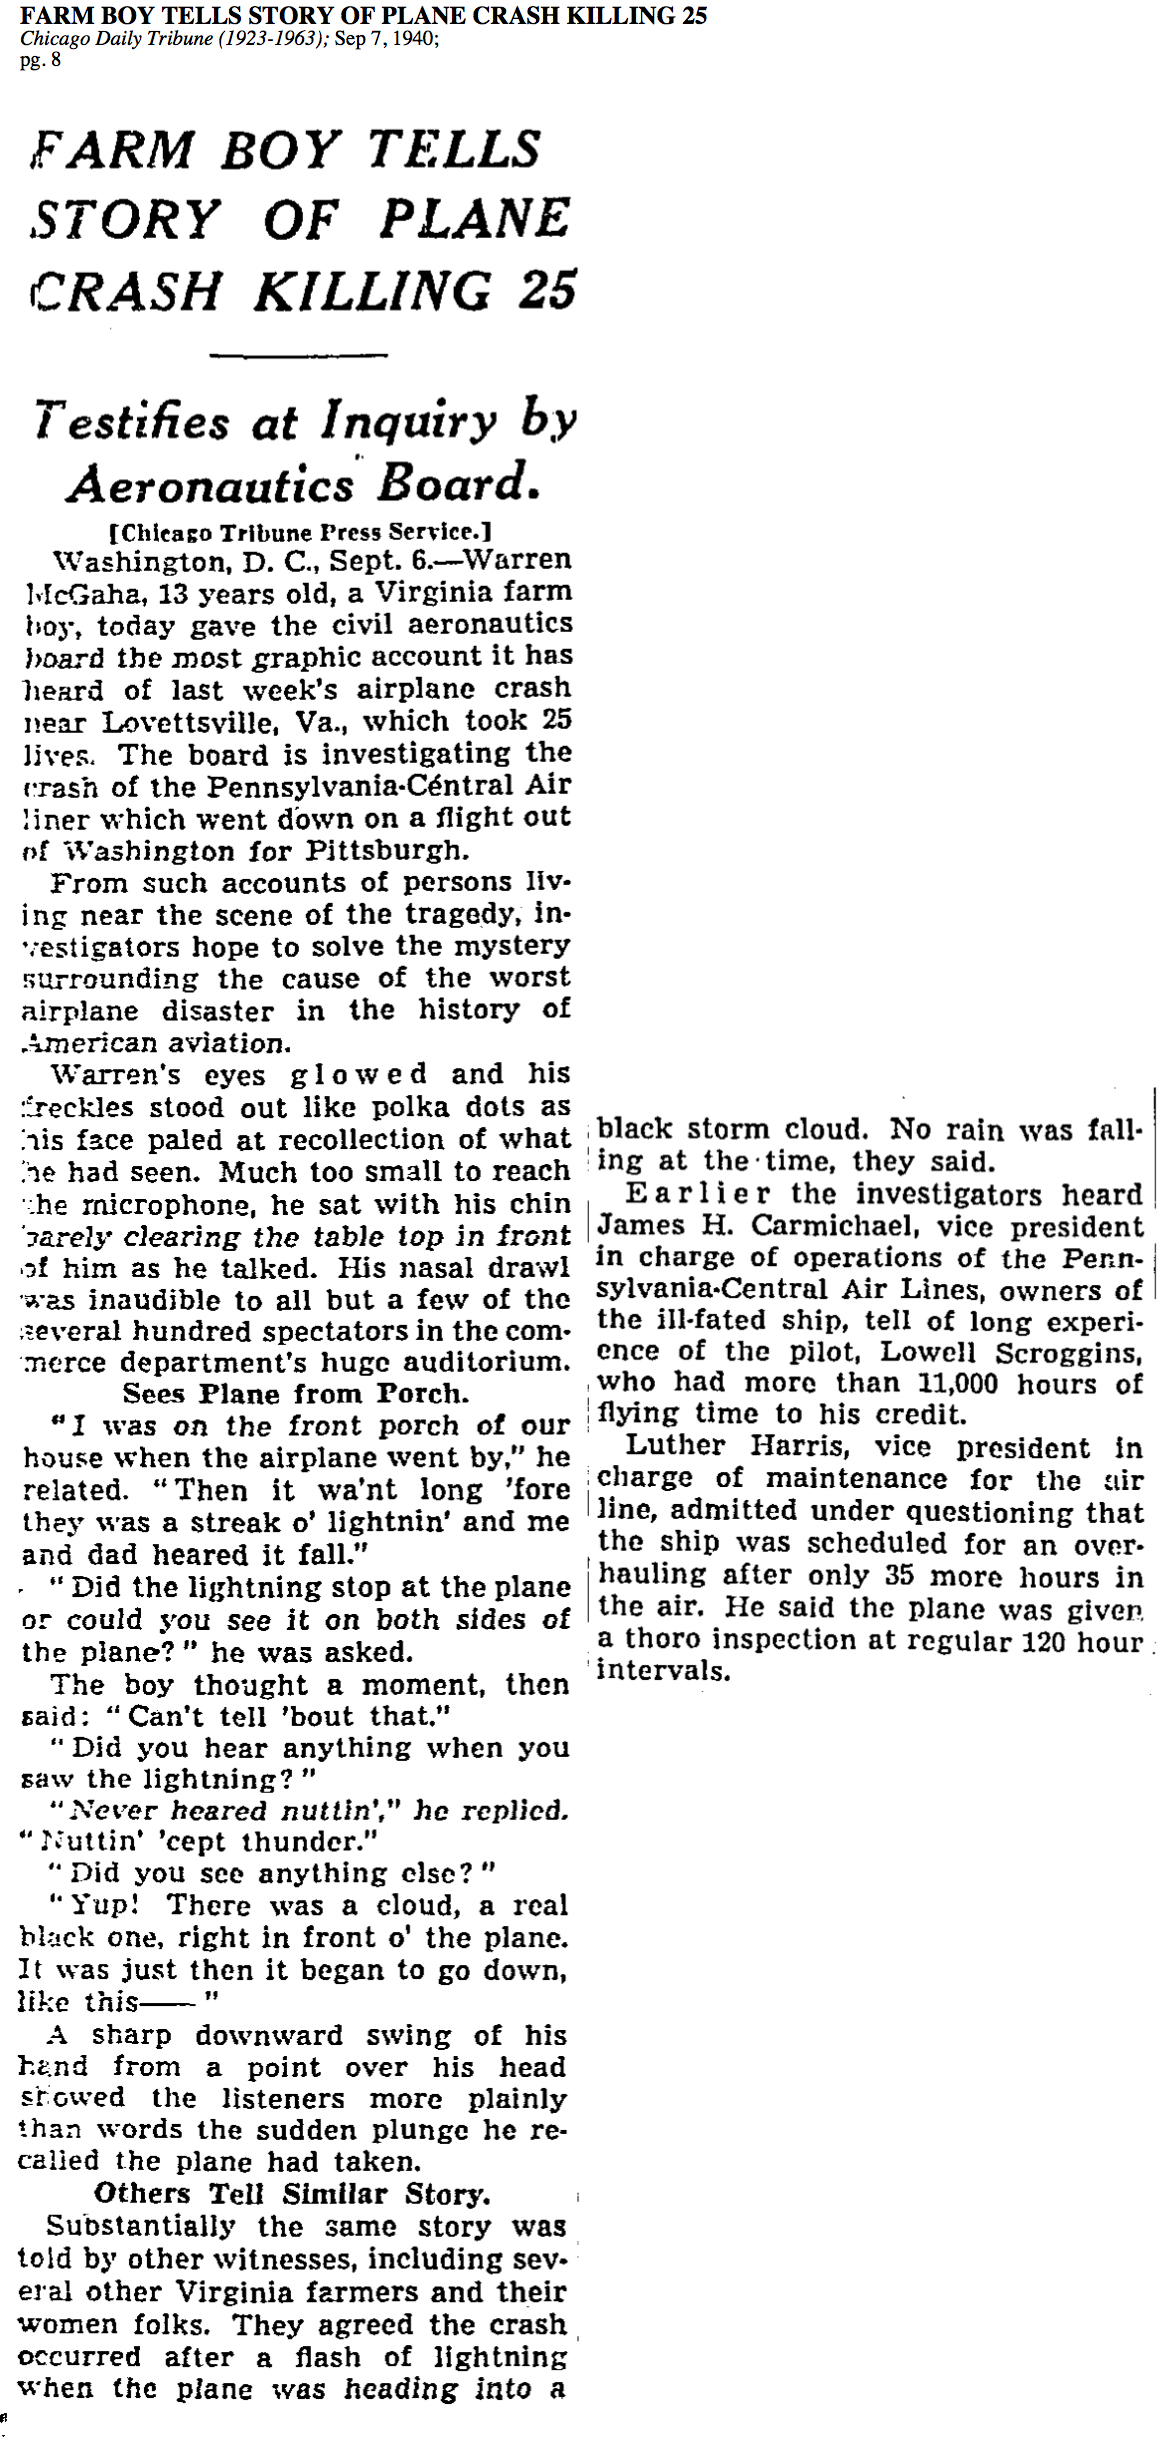 1940-09-07-lovettsville-air-disaster-farm-boy-tells-story-of-plane-crash-killing-25